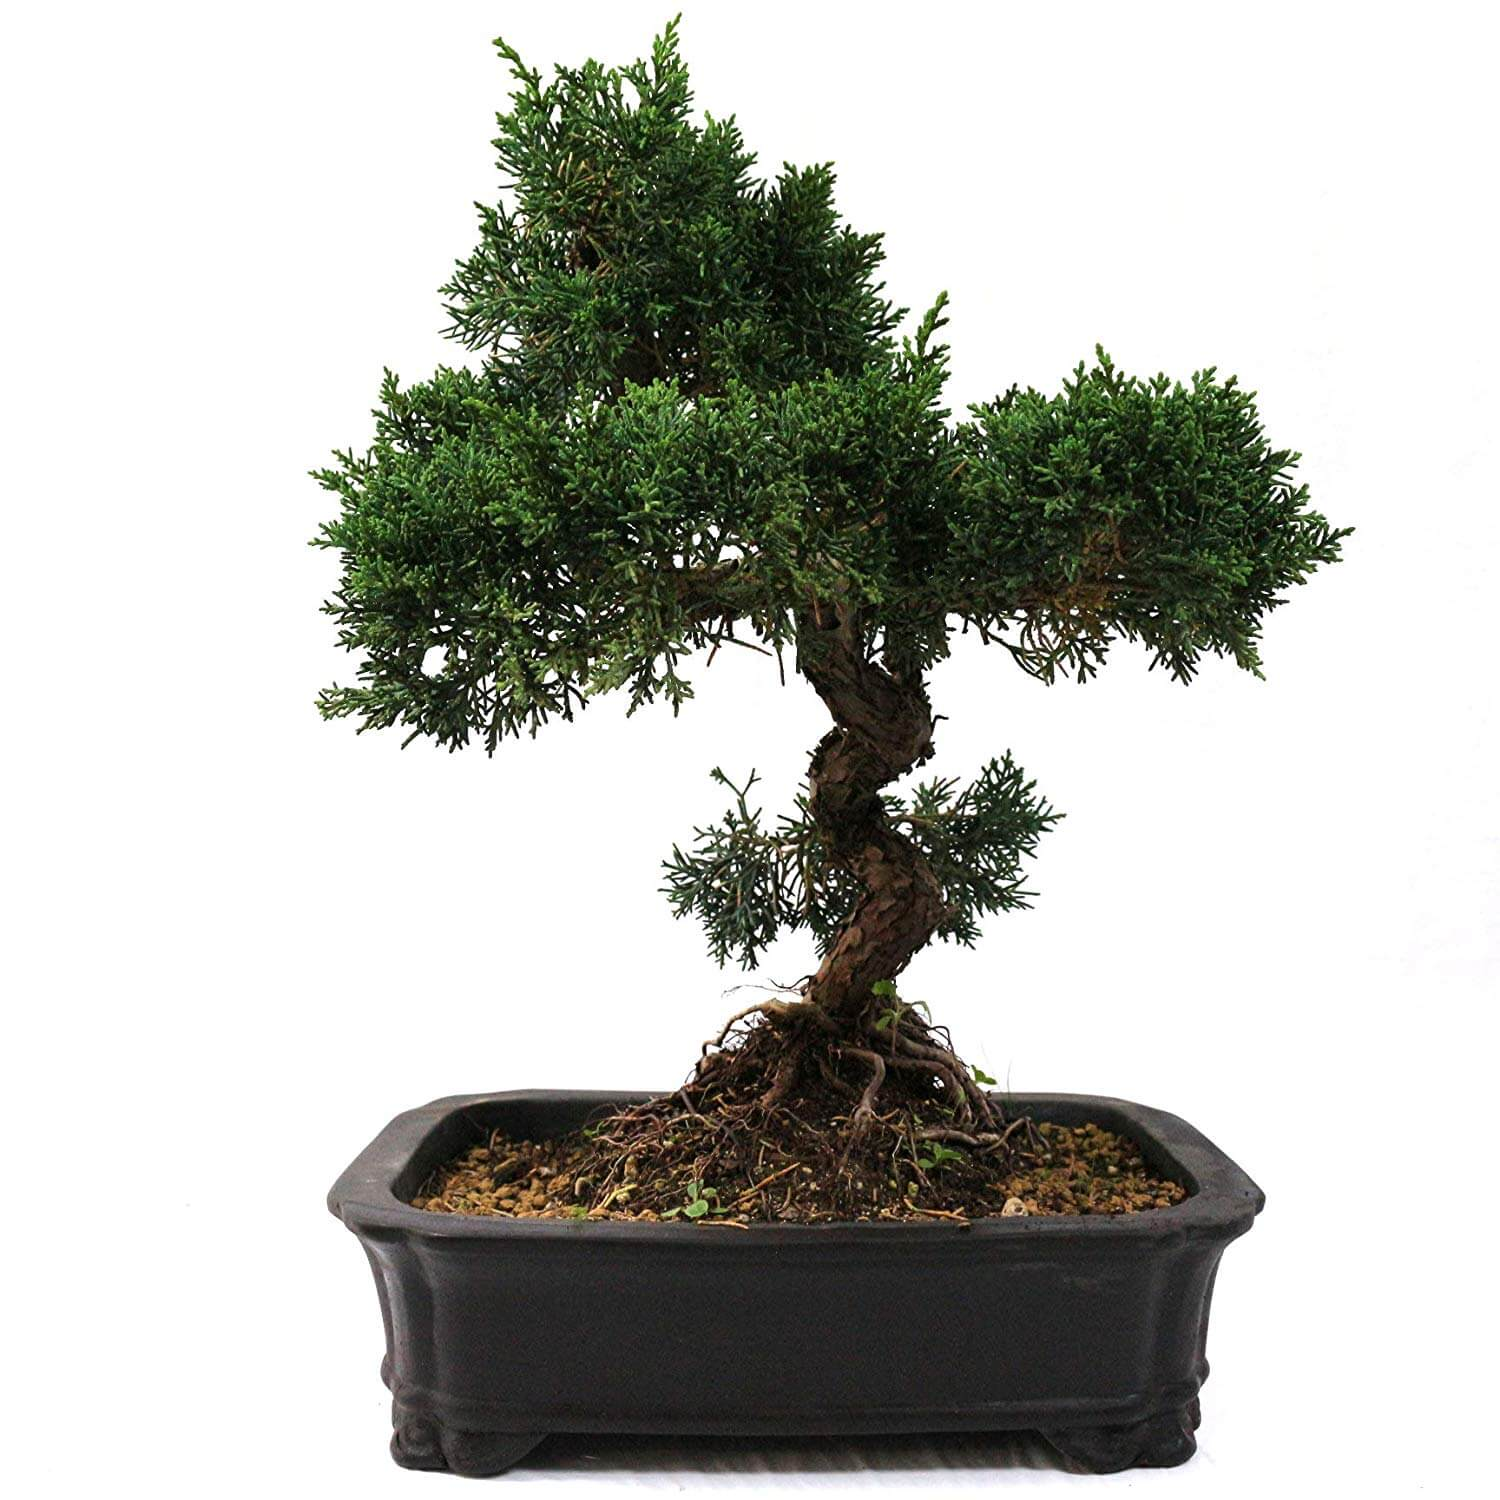 Ginseng Baum Pflege Bonsai Baum Schneiden. Affordable Bonsai Pflege With